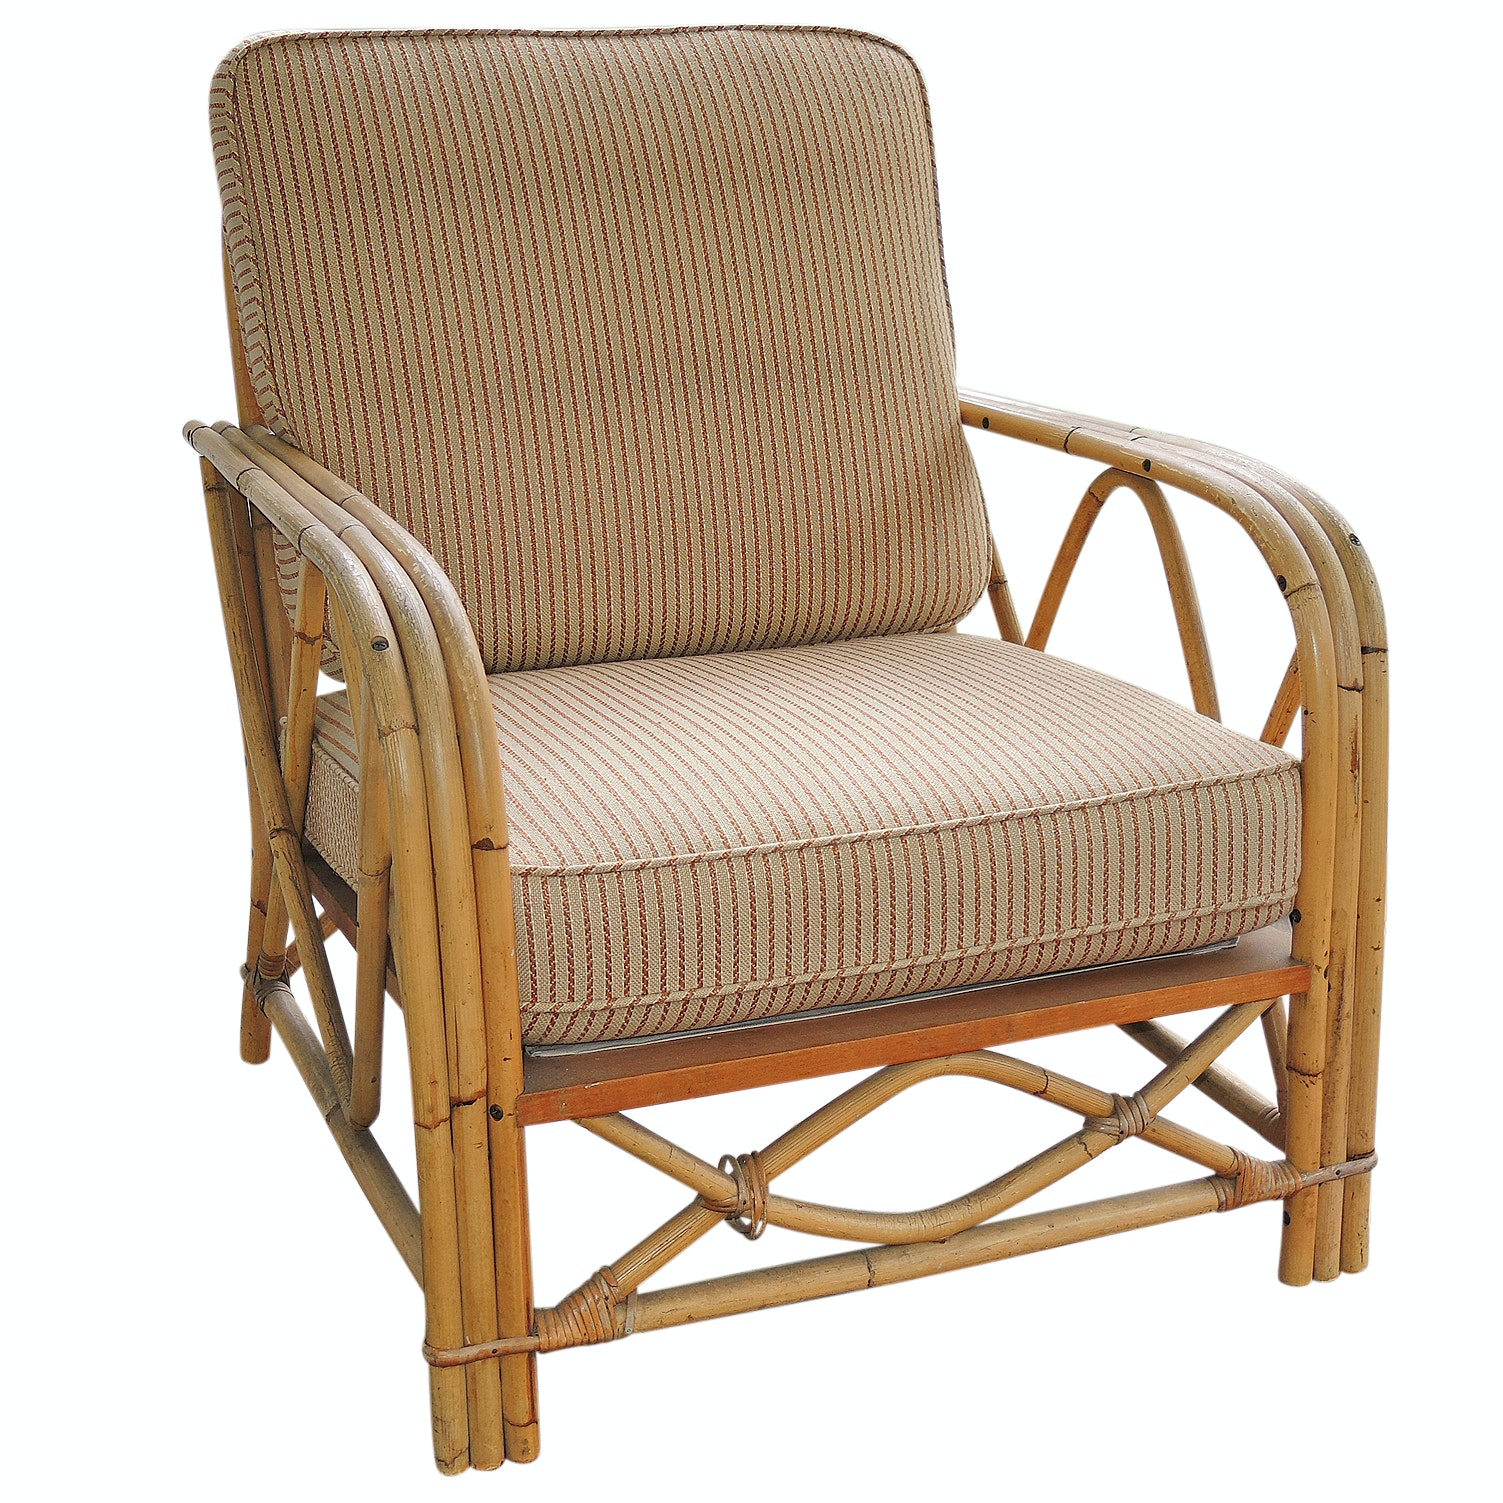 Ficks Reed Bamboo and Rattan Sunroom Chair